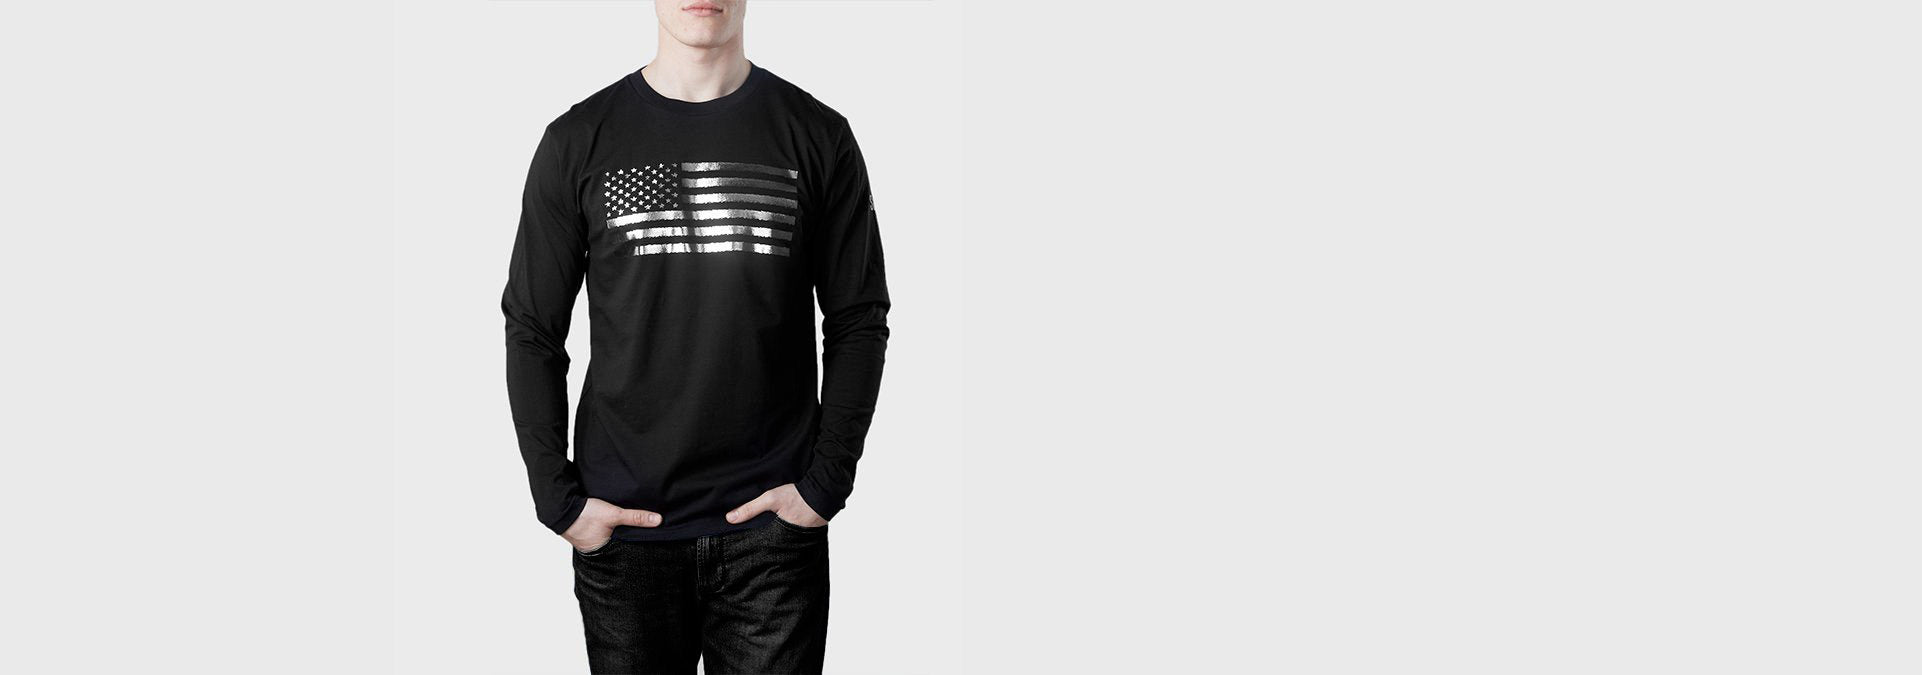 US Flag Organic Cotton L/S T-Shirt Black